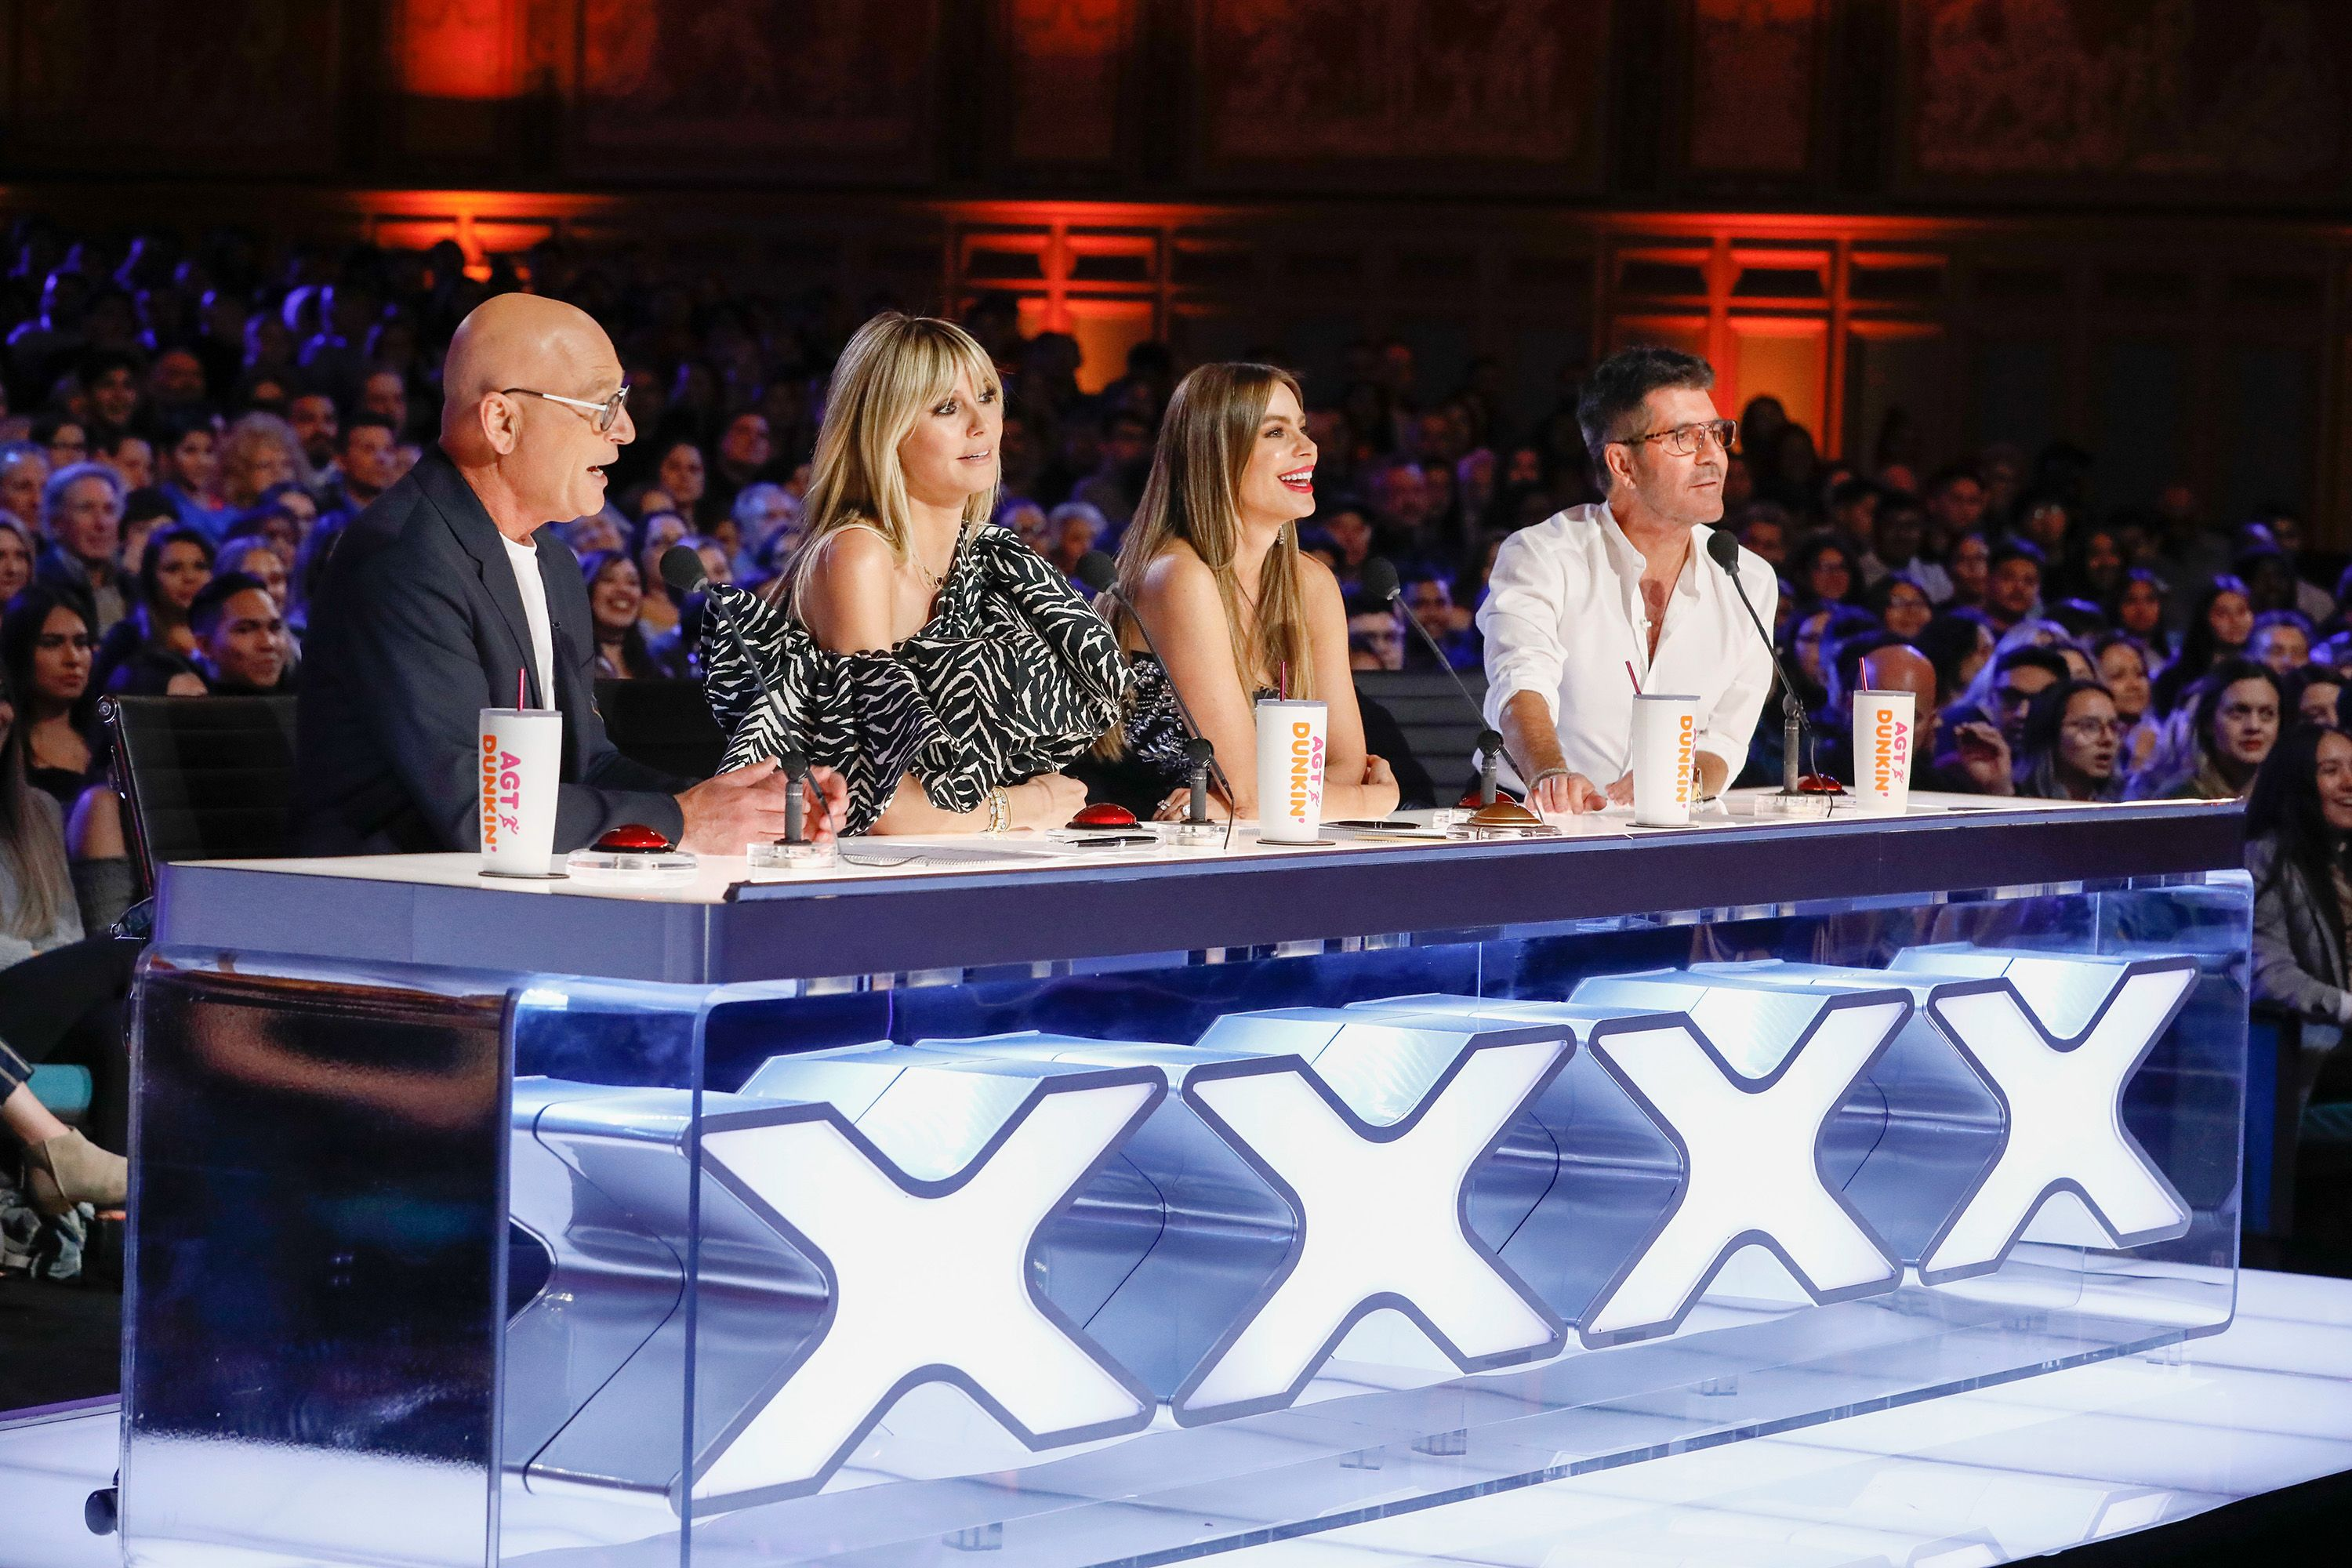 """Howie Mandel, Heidi Klum, Sofia Vergara, and Simon Cowell during the """"America's Got Talent"""" Episode 1501 on March 02, 2020 